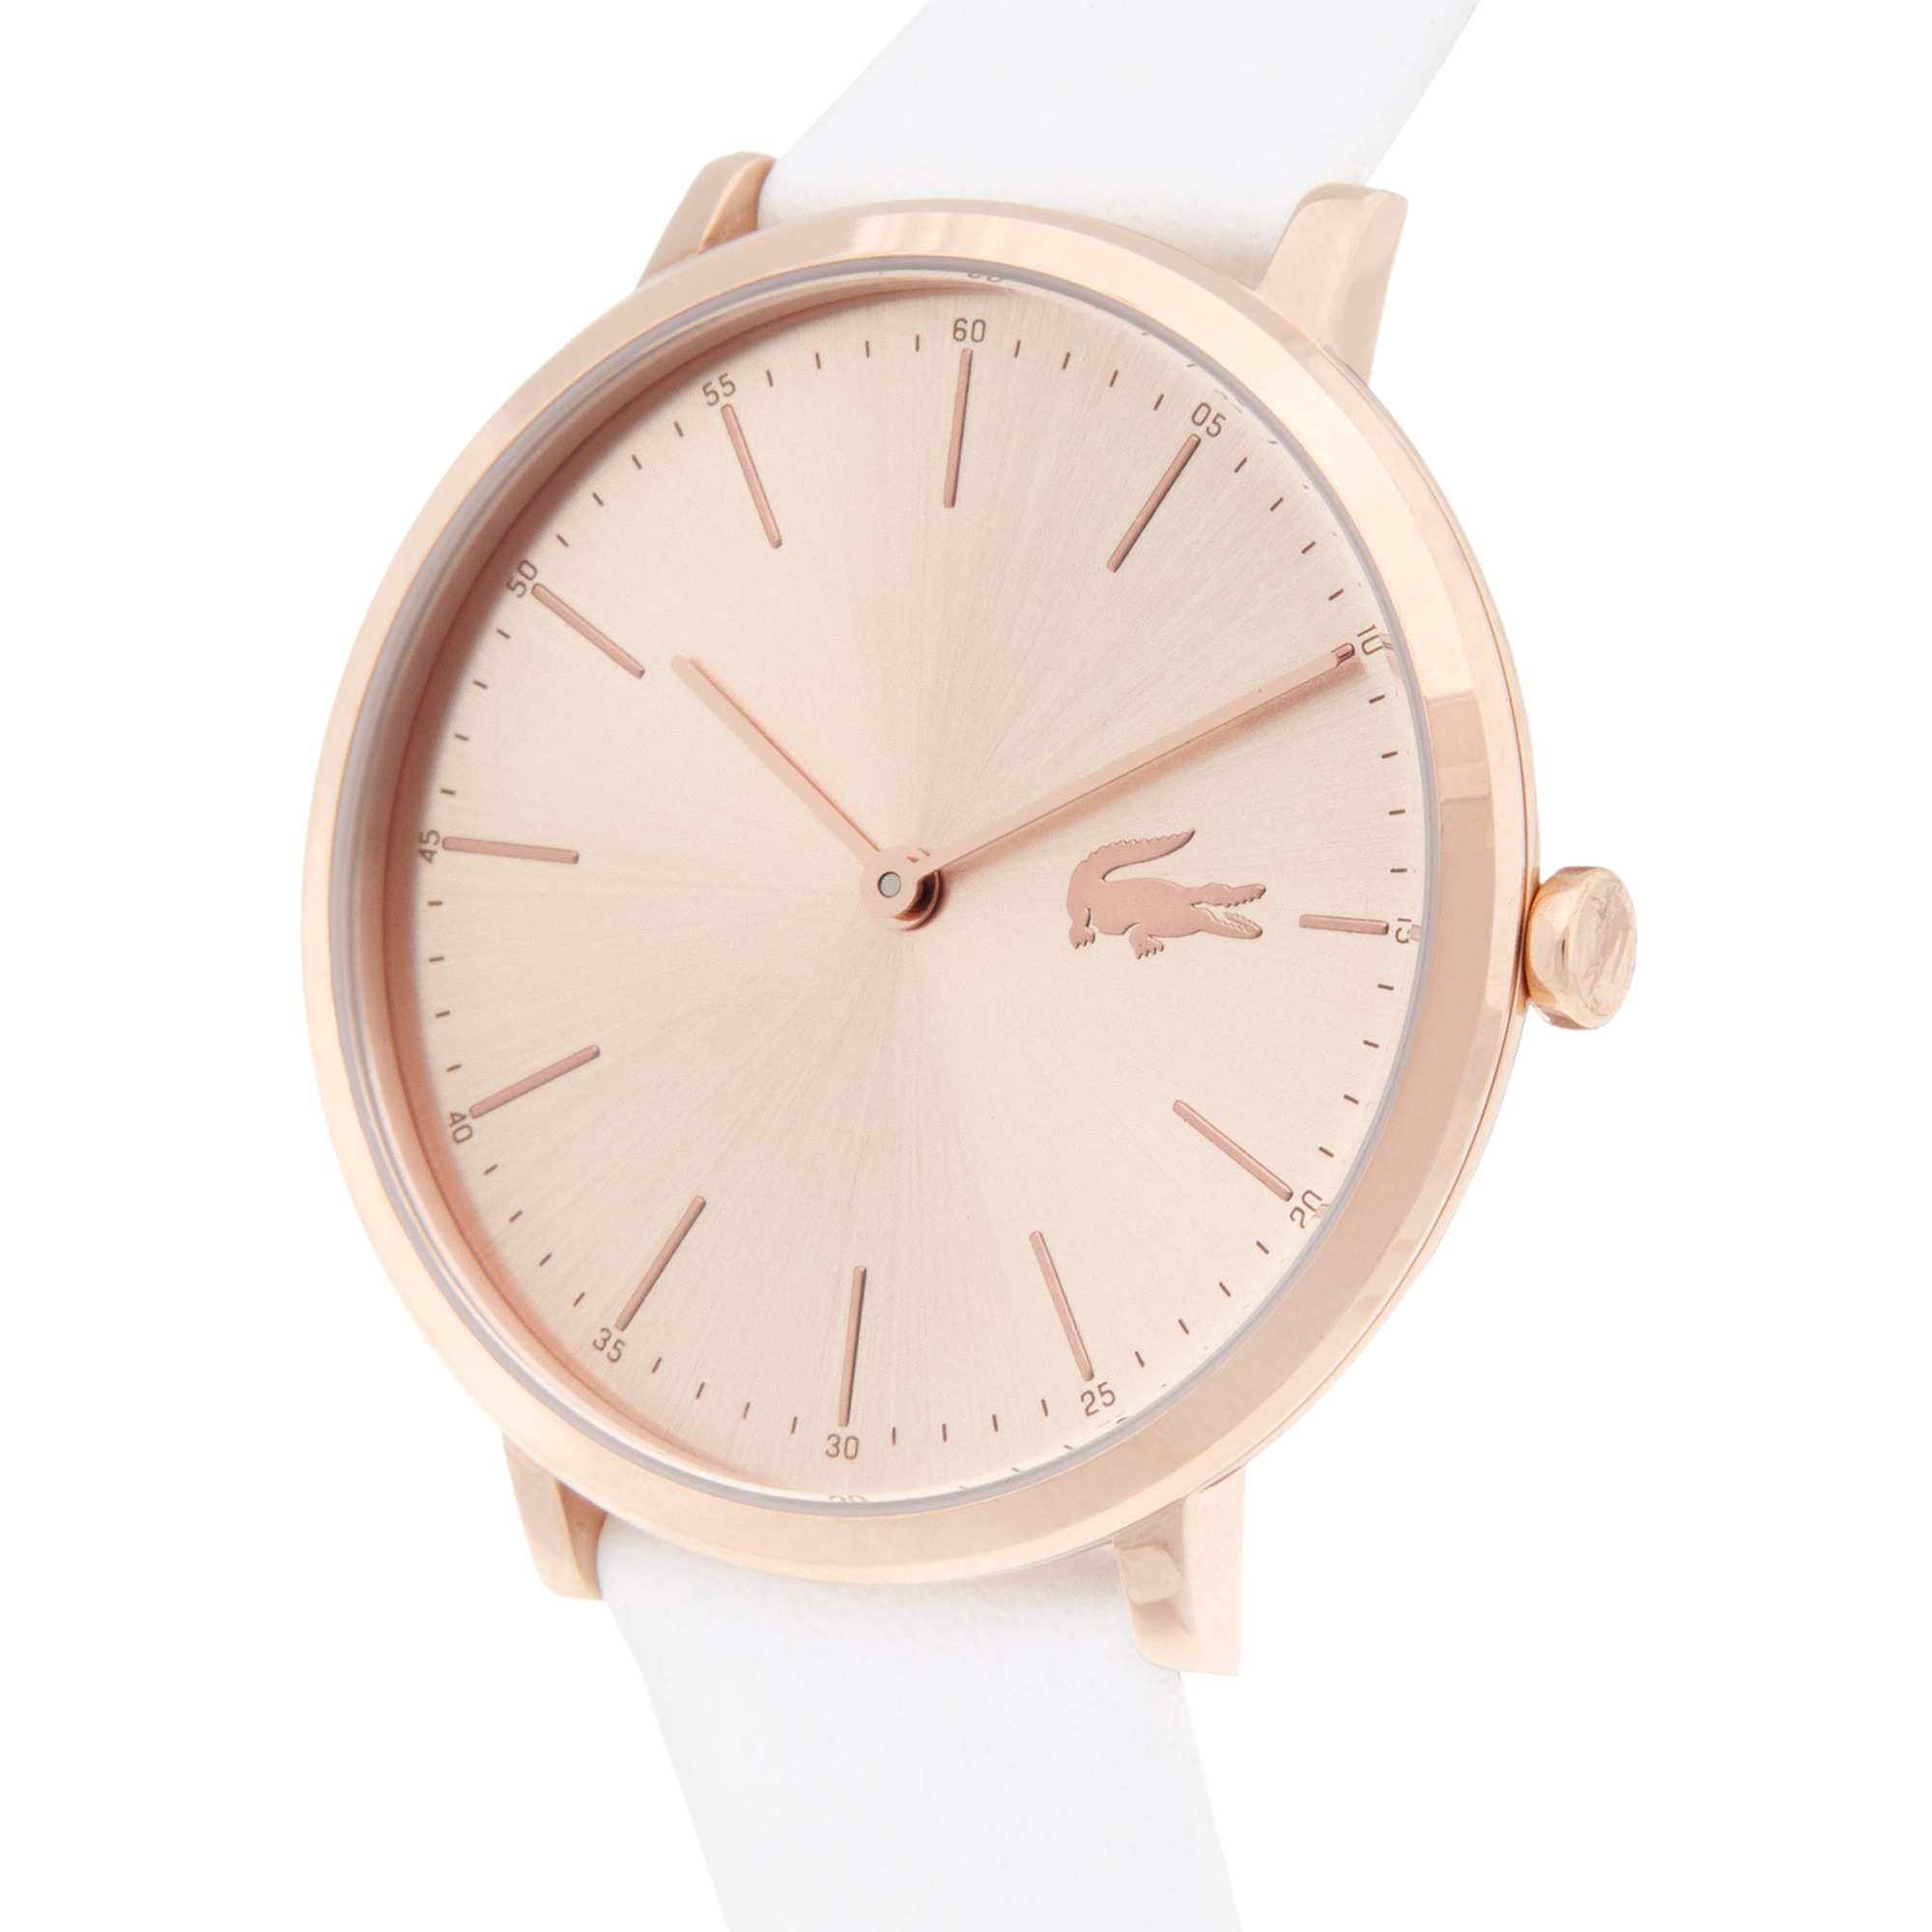 Women's Moon Ultra Slim Watch with White Leather Strap